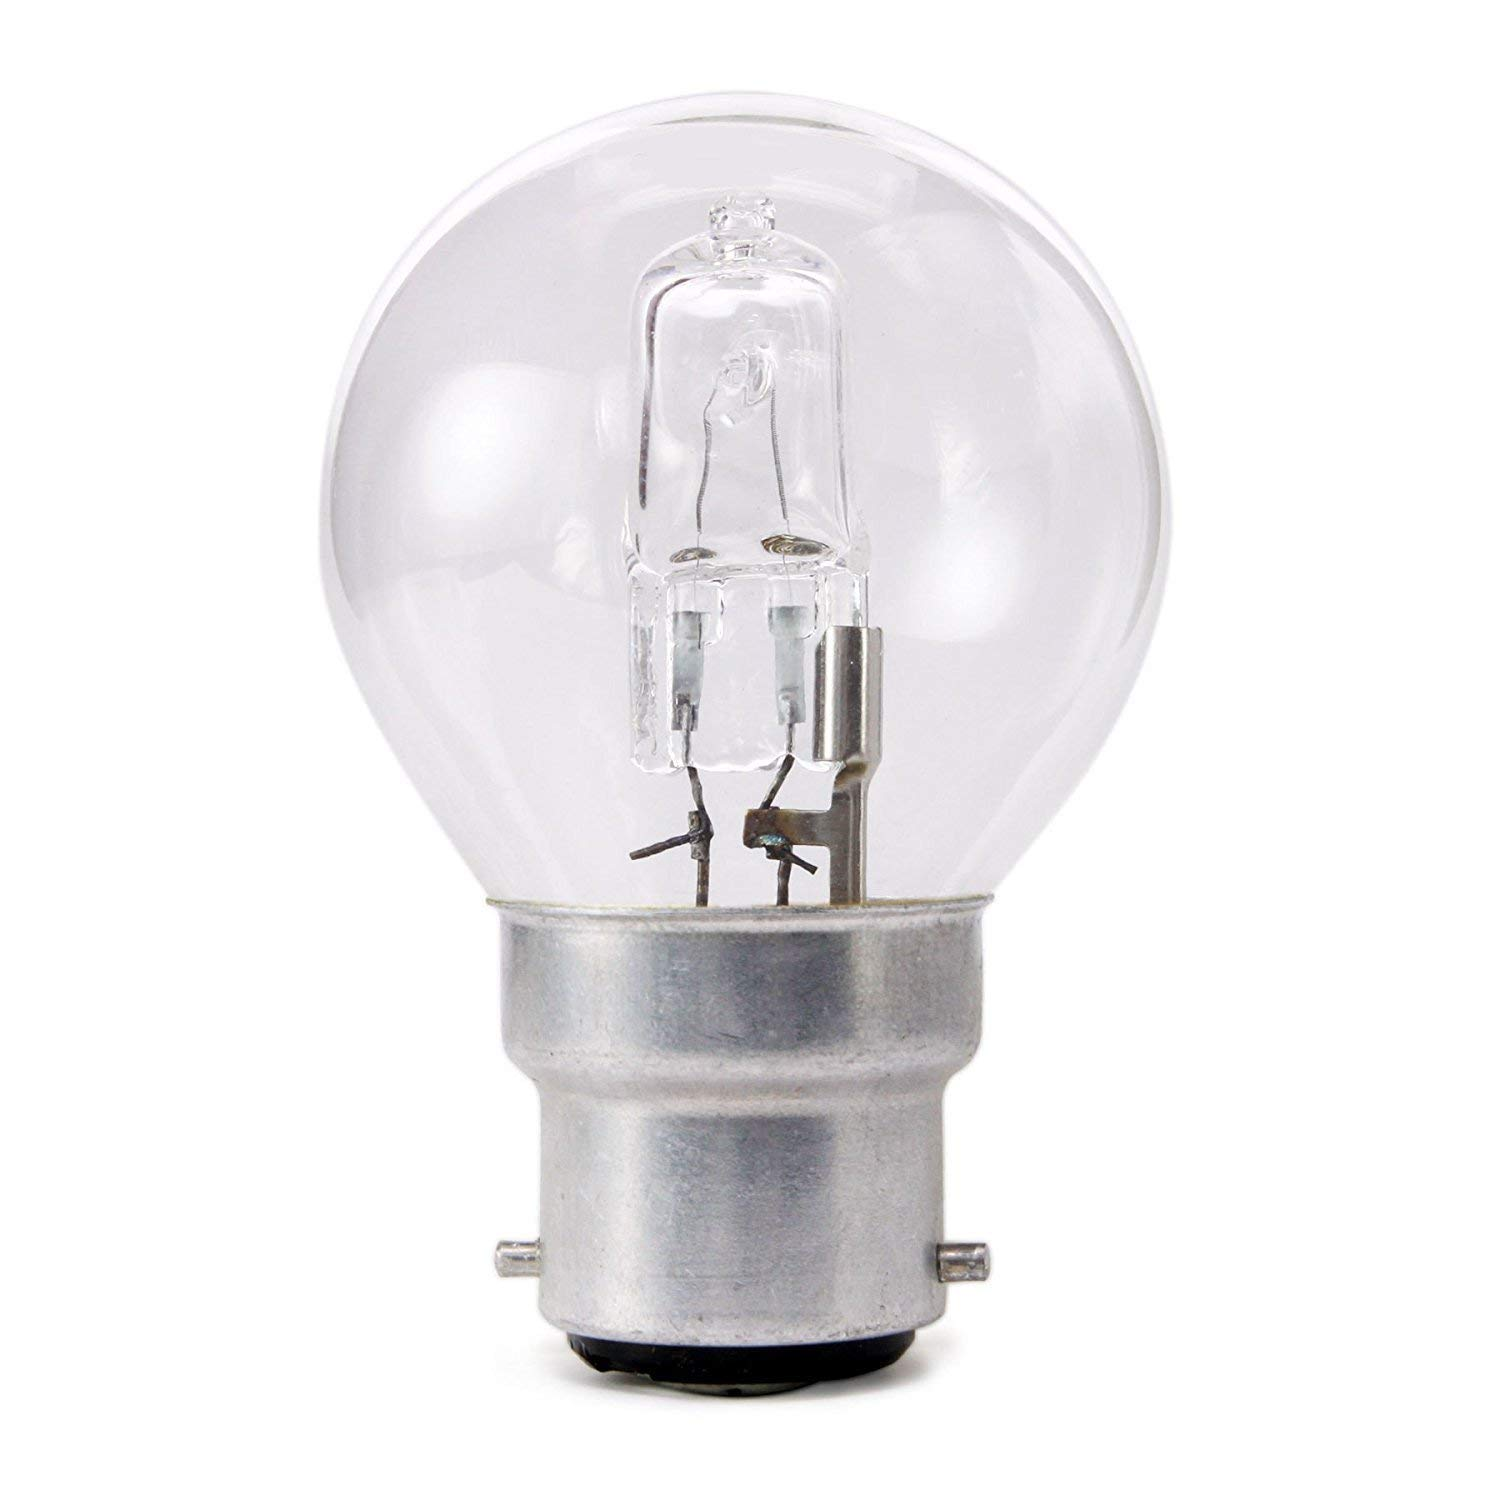 B22 BC 4 Pack A60 Classic 70W = 92W ECO Halogen Bayonet Cap Candle light bulb offer a sparkling crisp natural light with warm white 2700k colour temperature creating the perfect ambiancewith 1180 lumen output.